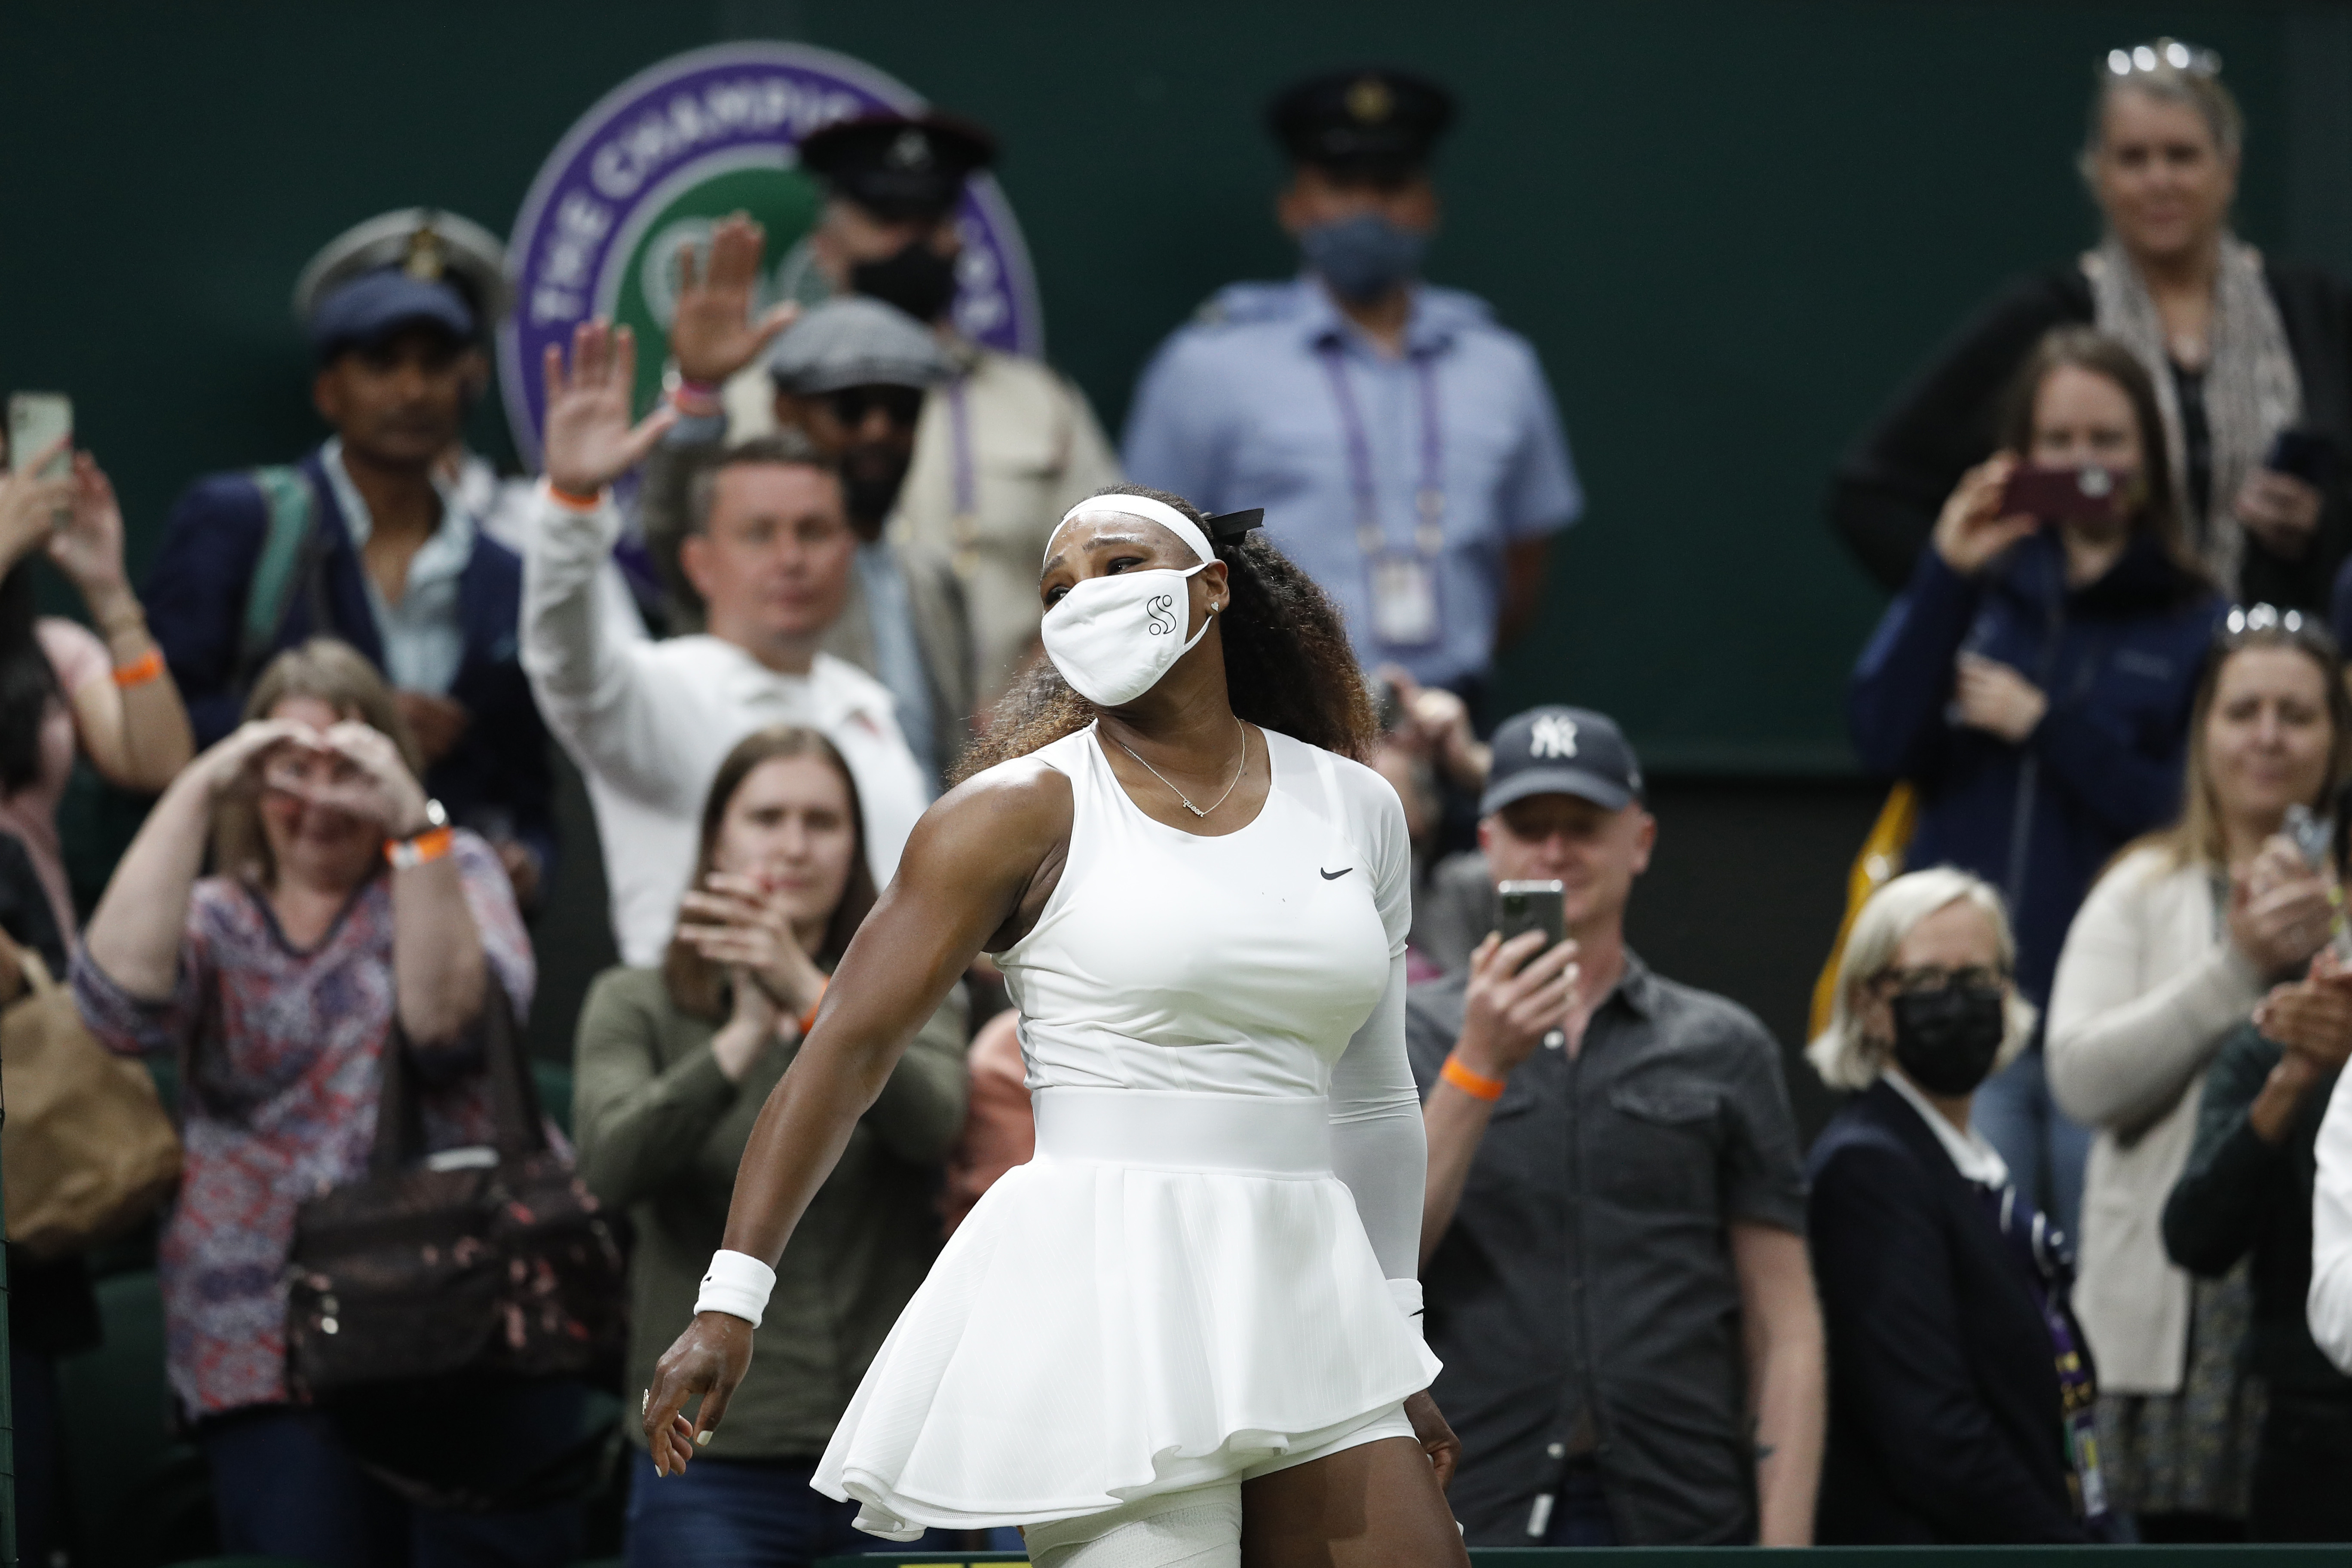 Tennis - Wimbledon - All England Lawn Tennis and Croquet Club, London, Britain - June 29, 2021 Serena Williams of the U.S. leaves court as she retires from her first round match against Belarus' Aliaksandra Sasnovich after sustaining an injury REUTERS/Peter Nicholls     TPX IMAGES OF THE DAY